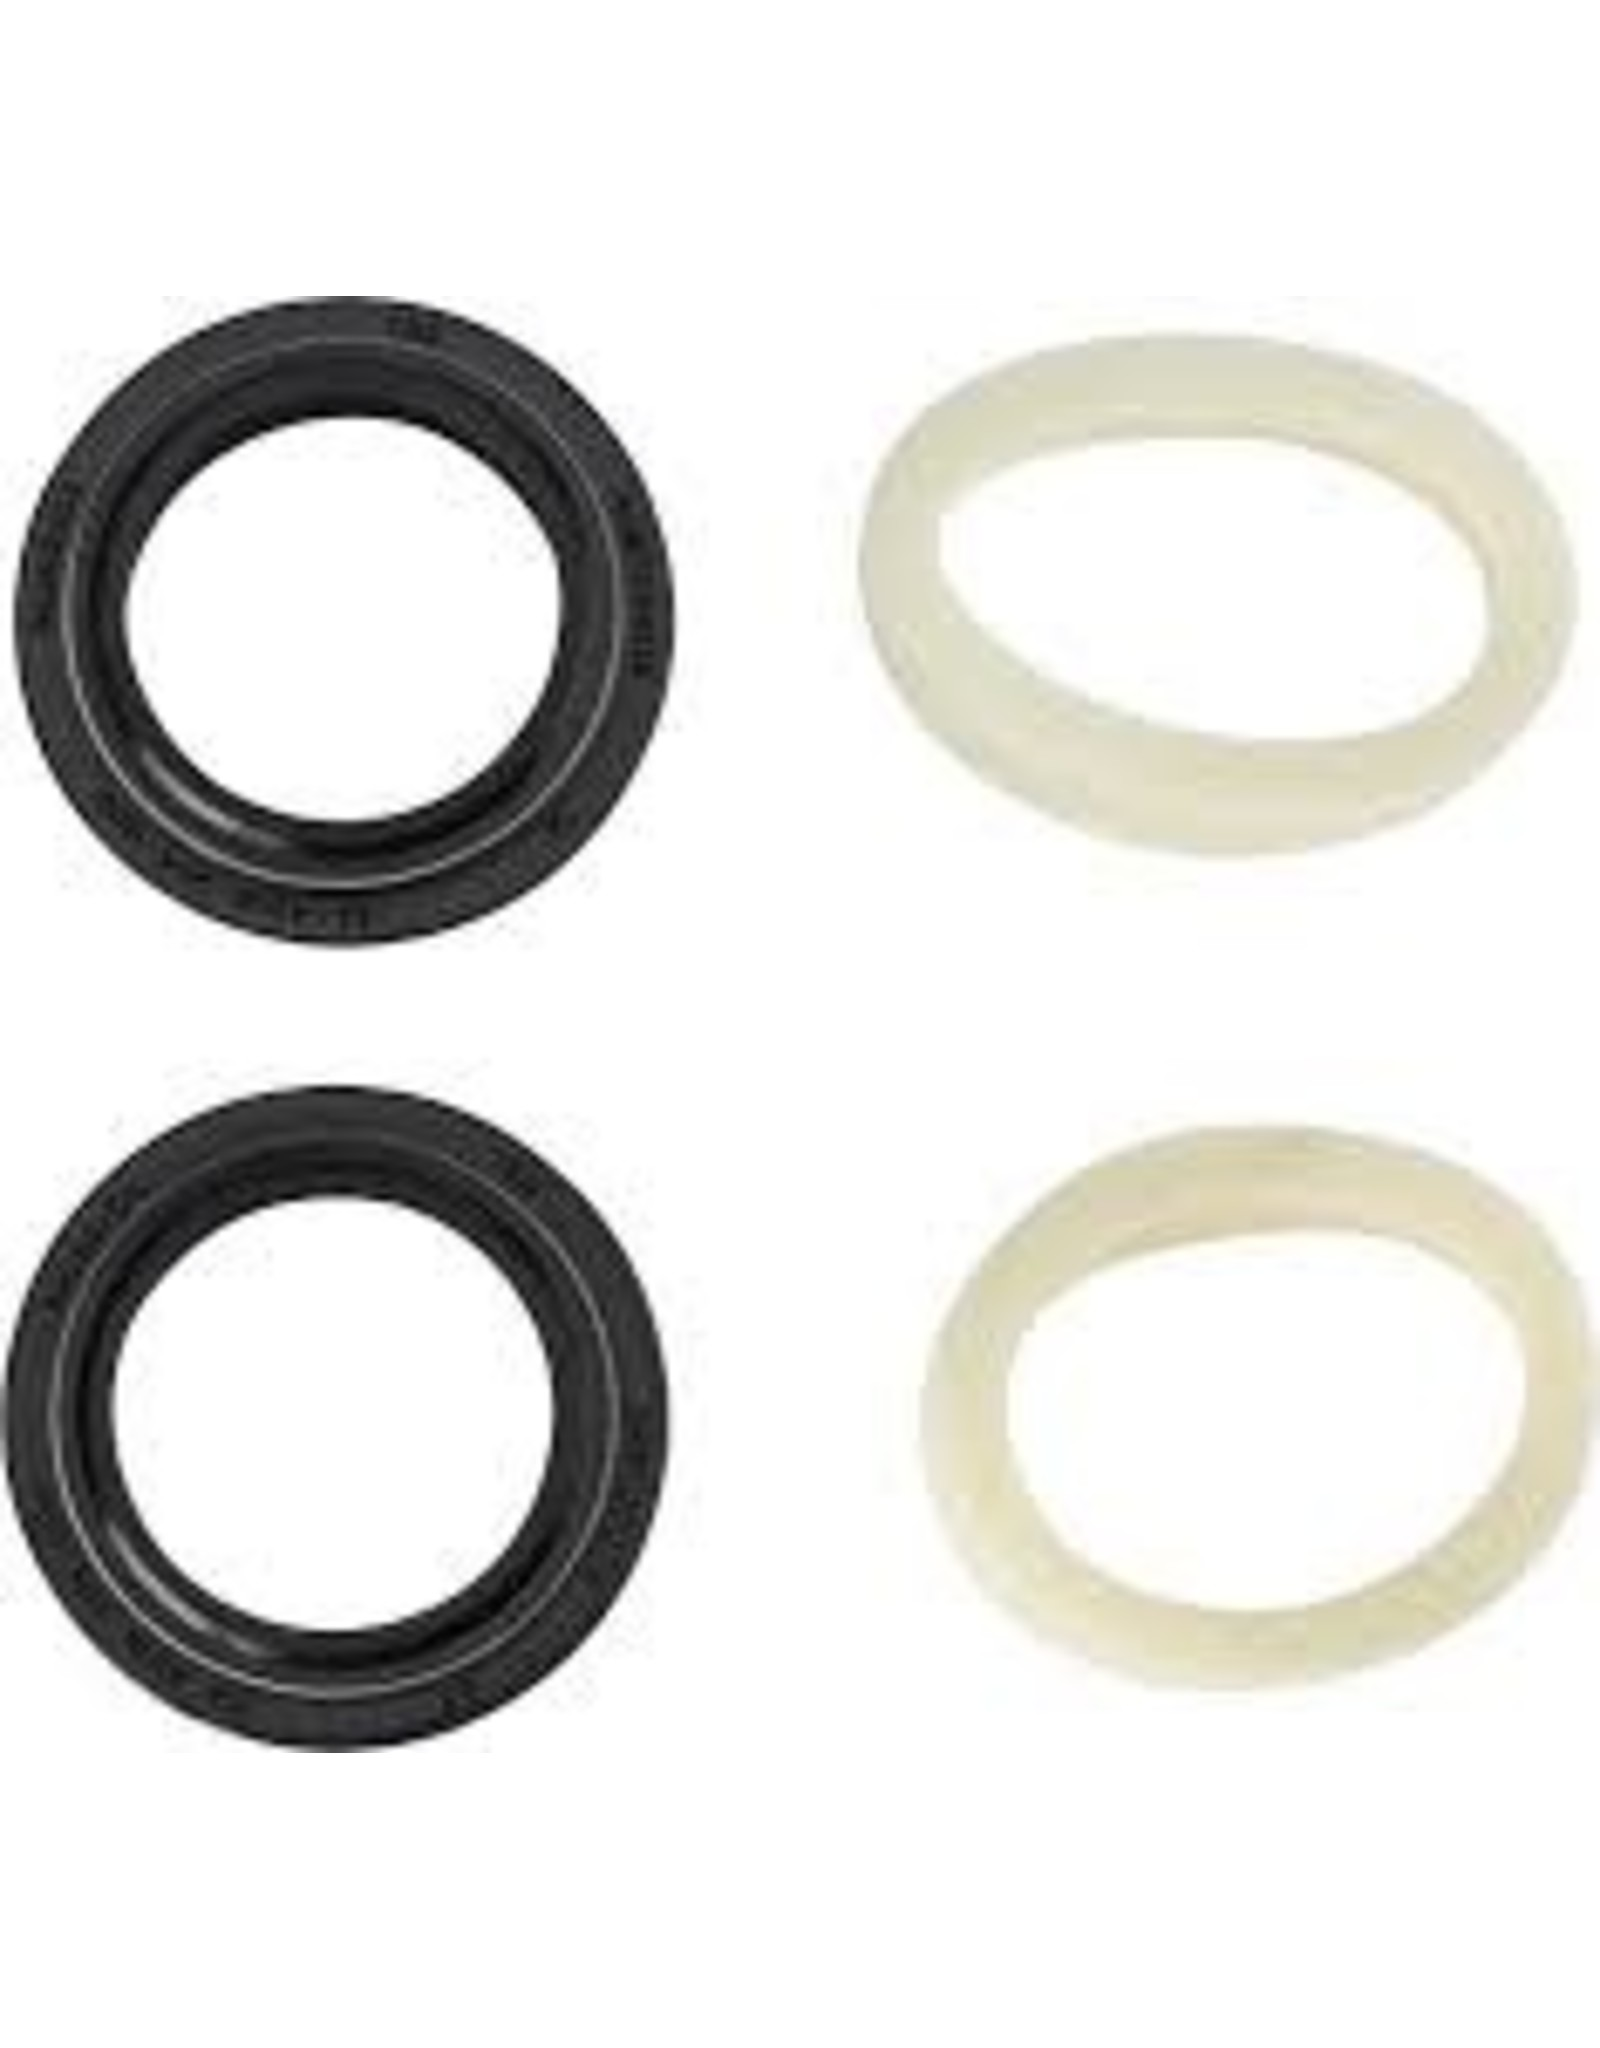 RockShox Seal Kit RockShox Revelation A3 Dust Seal / Foam Ring Black 32mm Seal 10mm Foam Ring